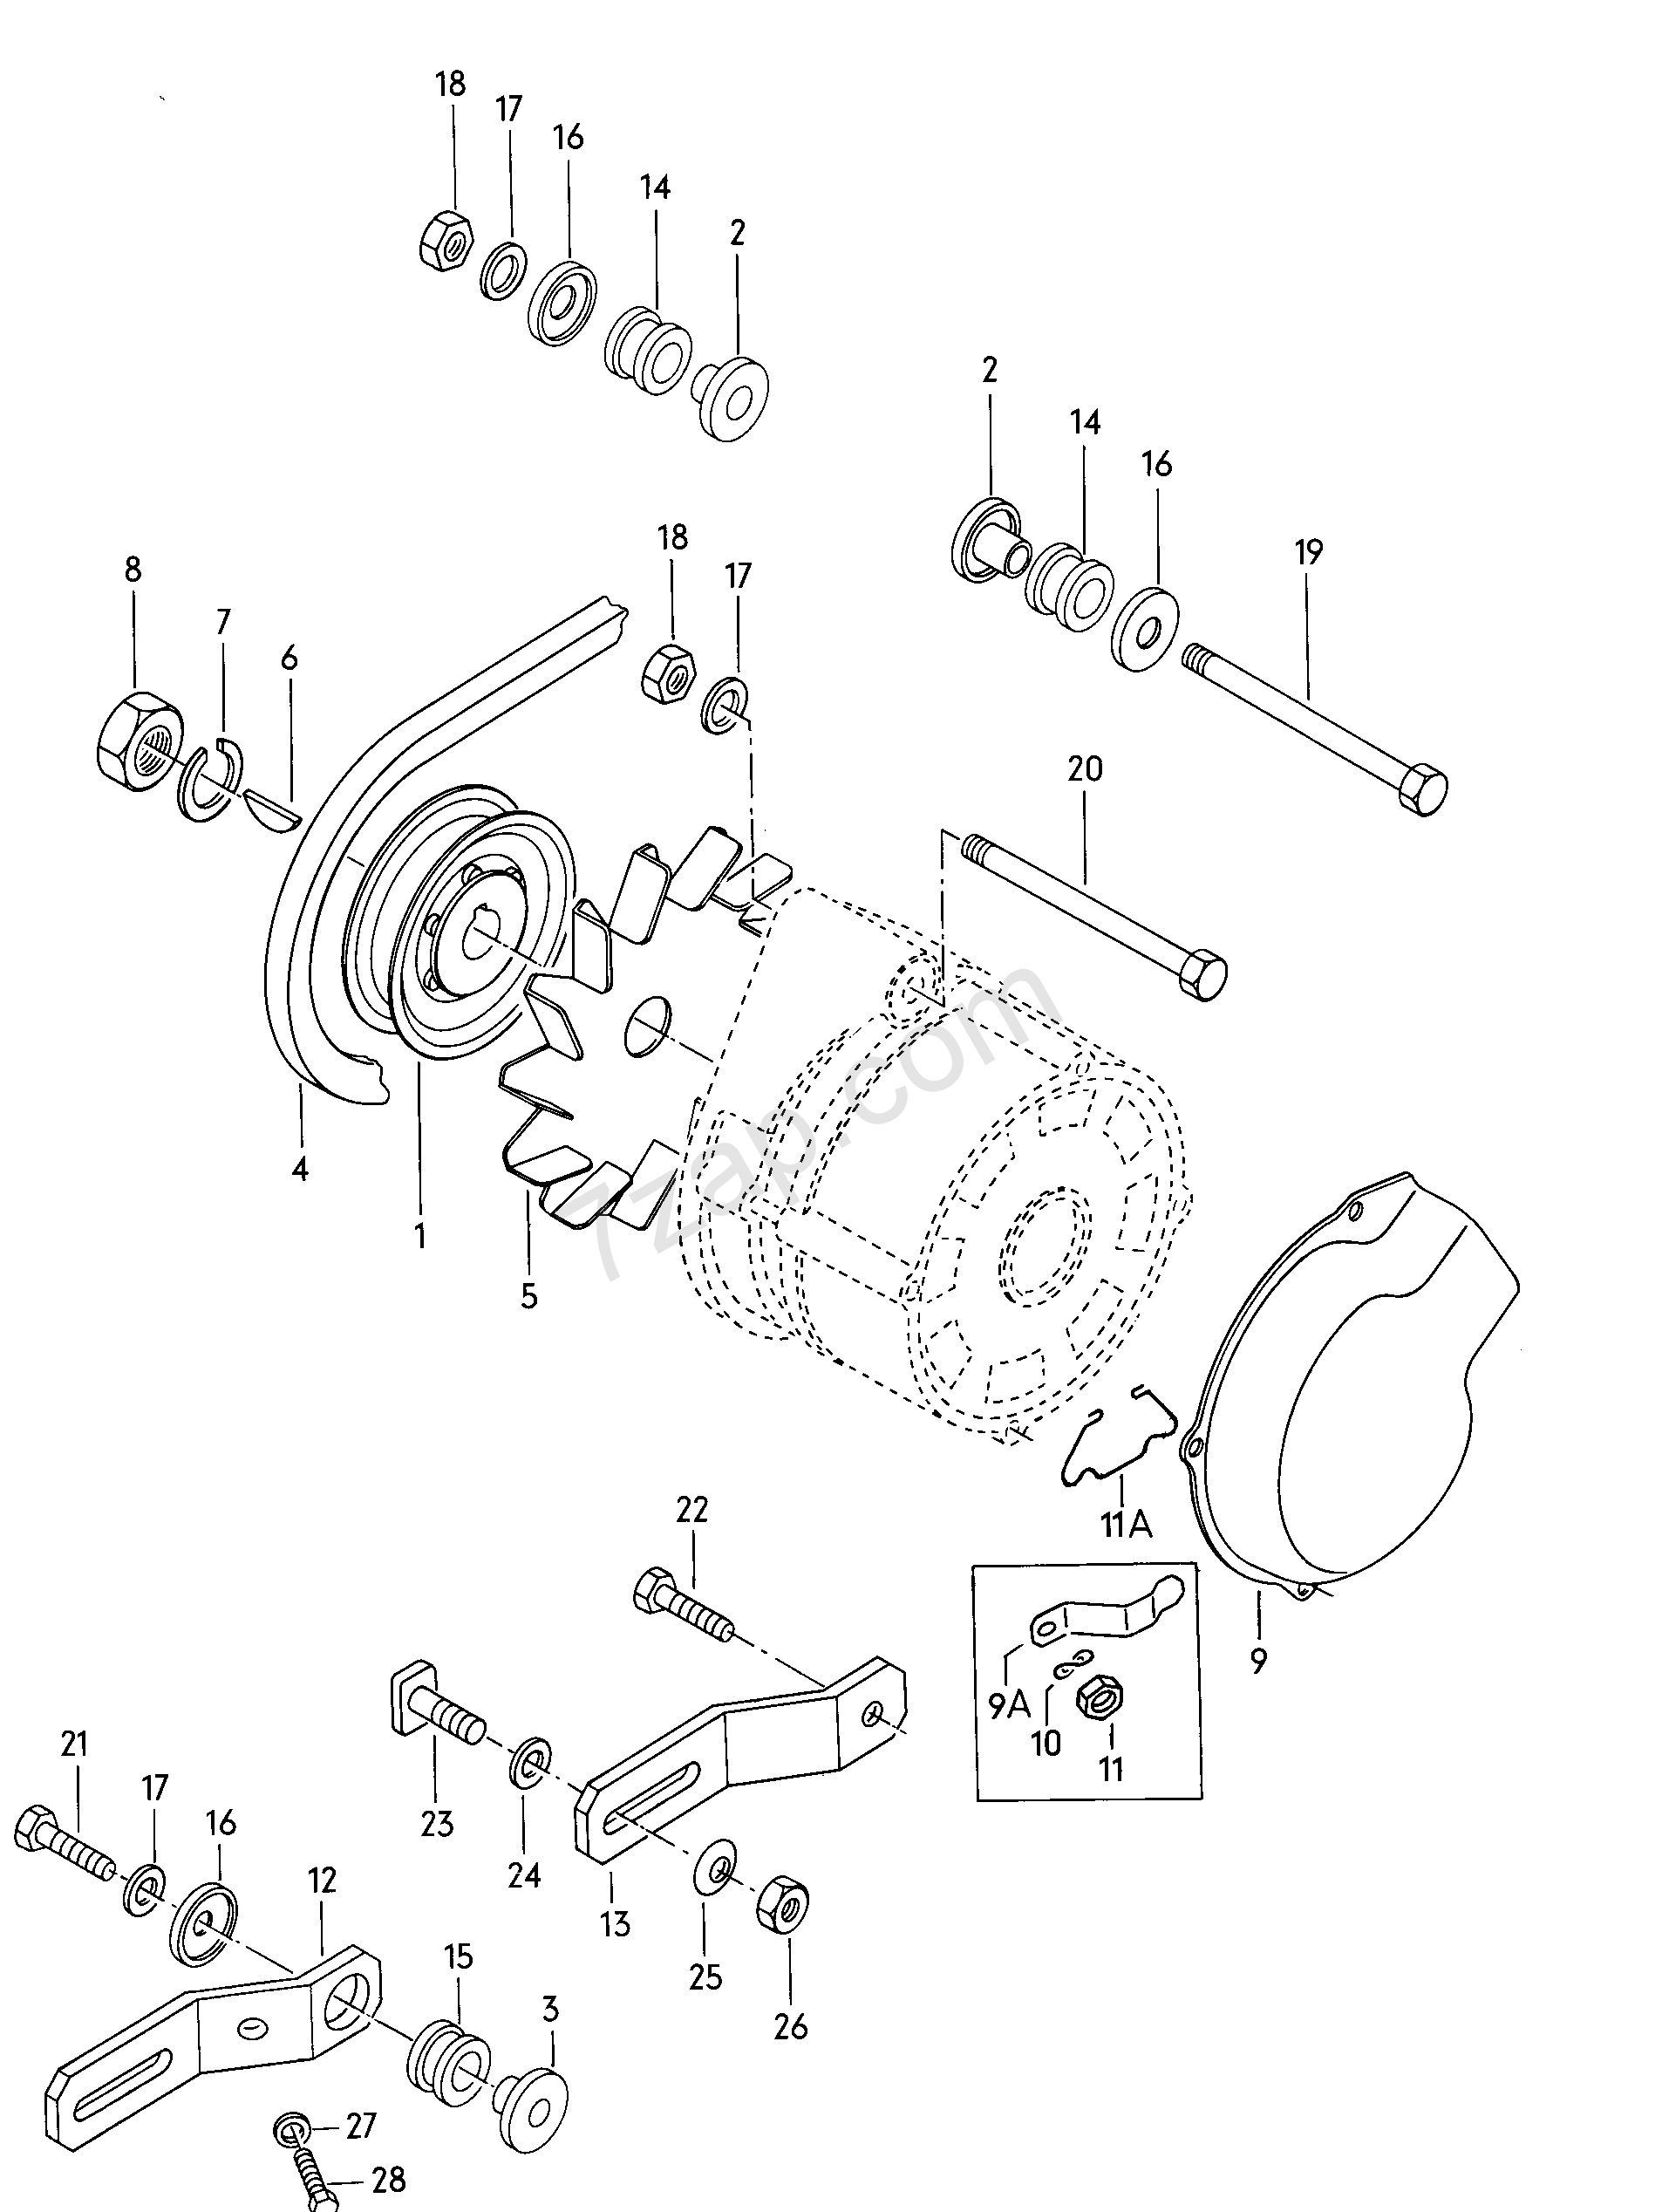 connecting and mounting parts for alternator - Polo/Derby/Vento-IND(PO)  [EUROPA 1976 year]